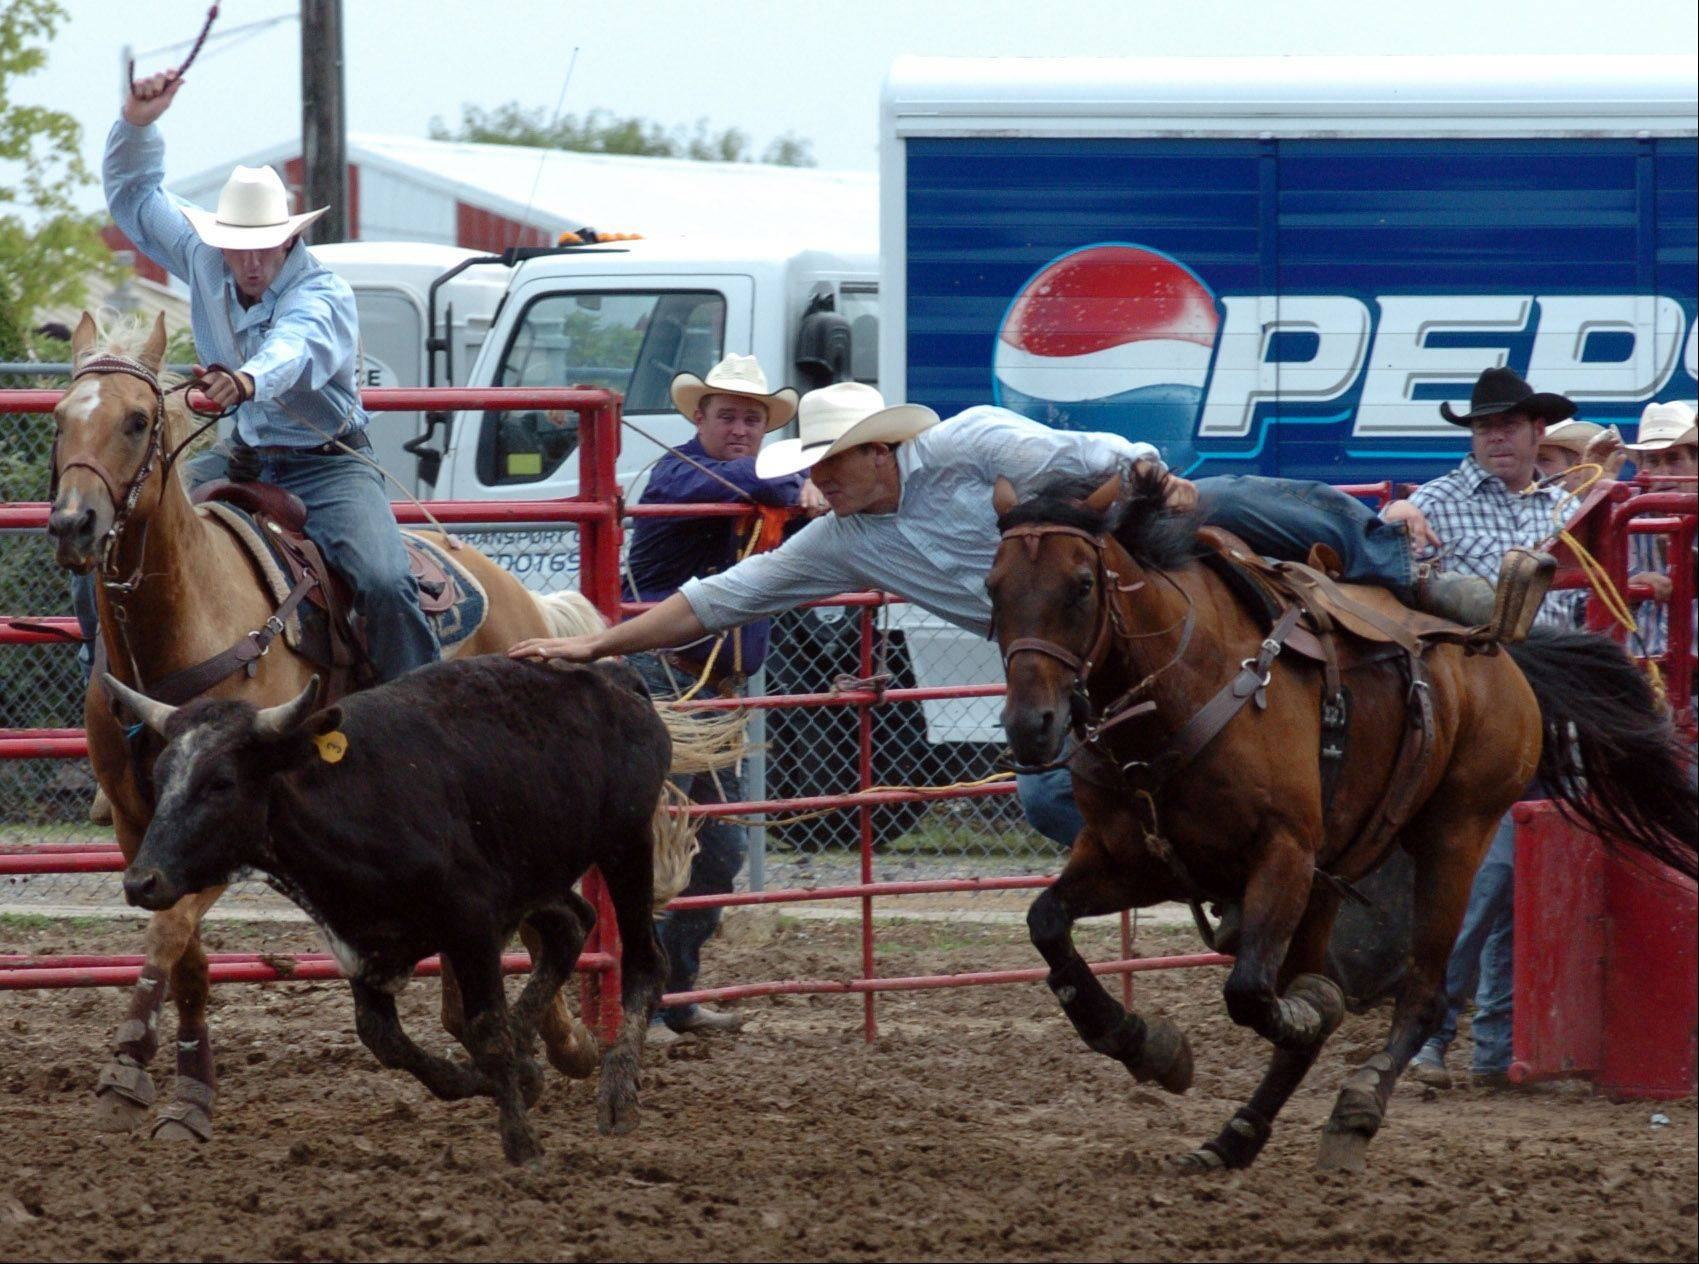 Kane County Fair boasts bull riding, rodeo shows